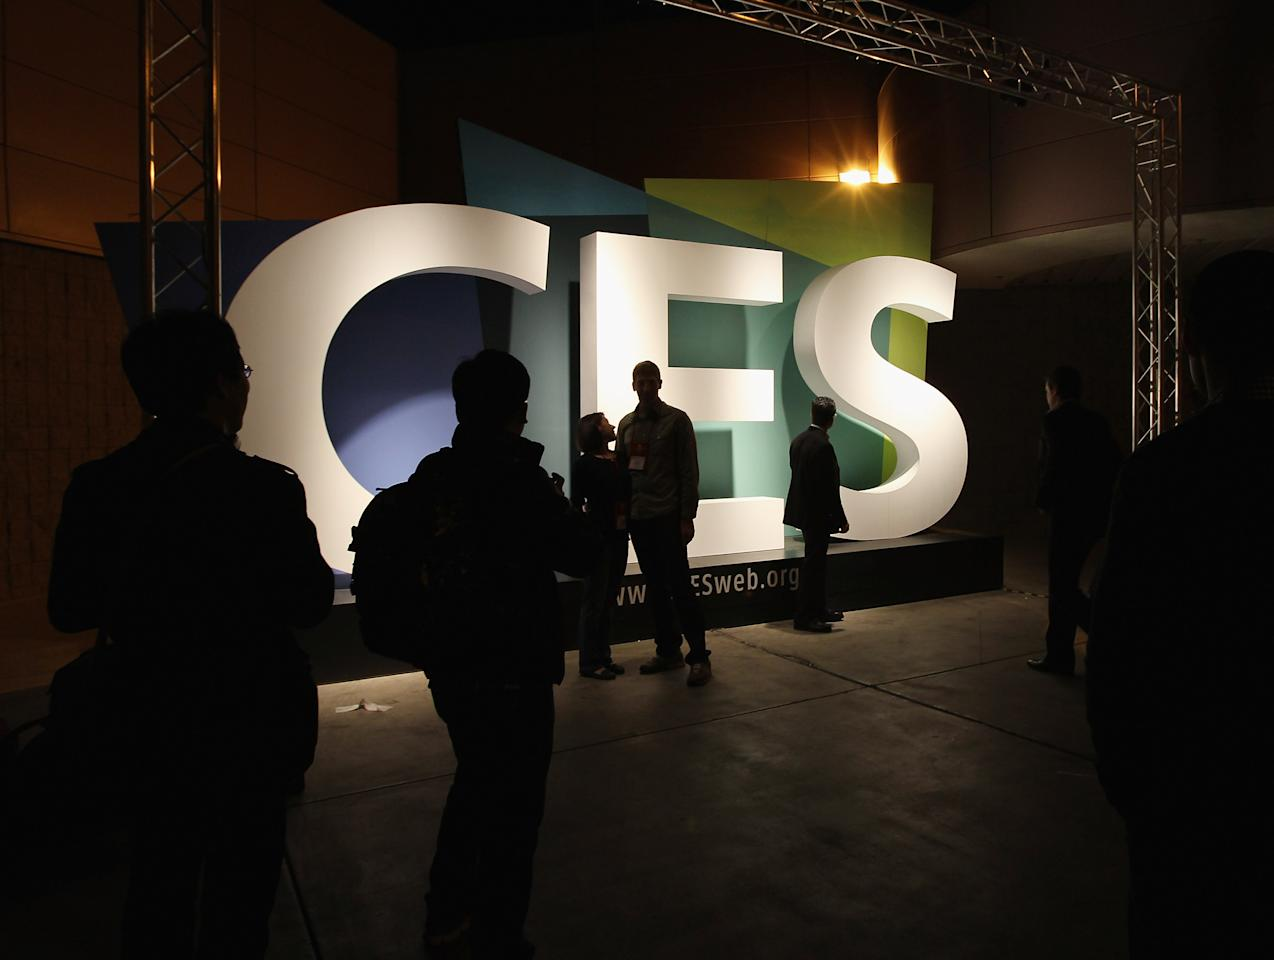 LAS VEGAS, NV - JANUARY 11:  Attendees pose by the CES sign outside the 2012 International Consumer Electronics Show at the Las Vegas Convention Center January 11, 2012 in Las Vegas, Nevada. CES, the world's largest annual consumer technology trade show, runs through January 13 and features more than 3,100 exhibitors showing off their latest products and services to about 140,000 attendees.  (Photo by Bruce Bennett/Getty Images)